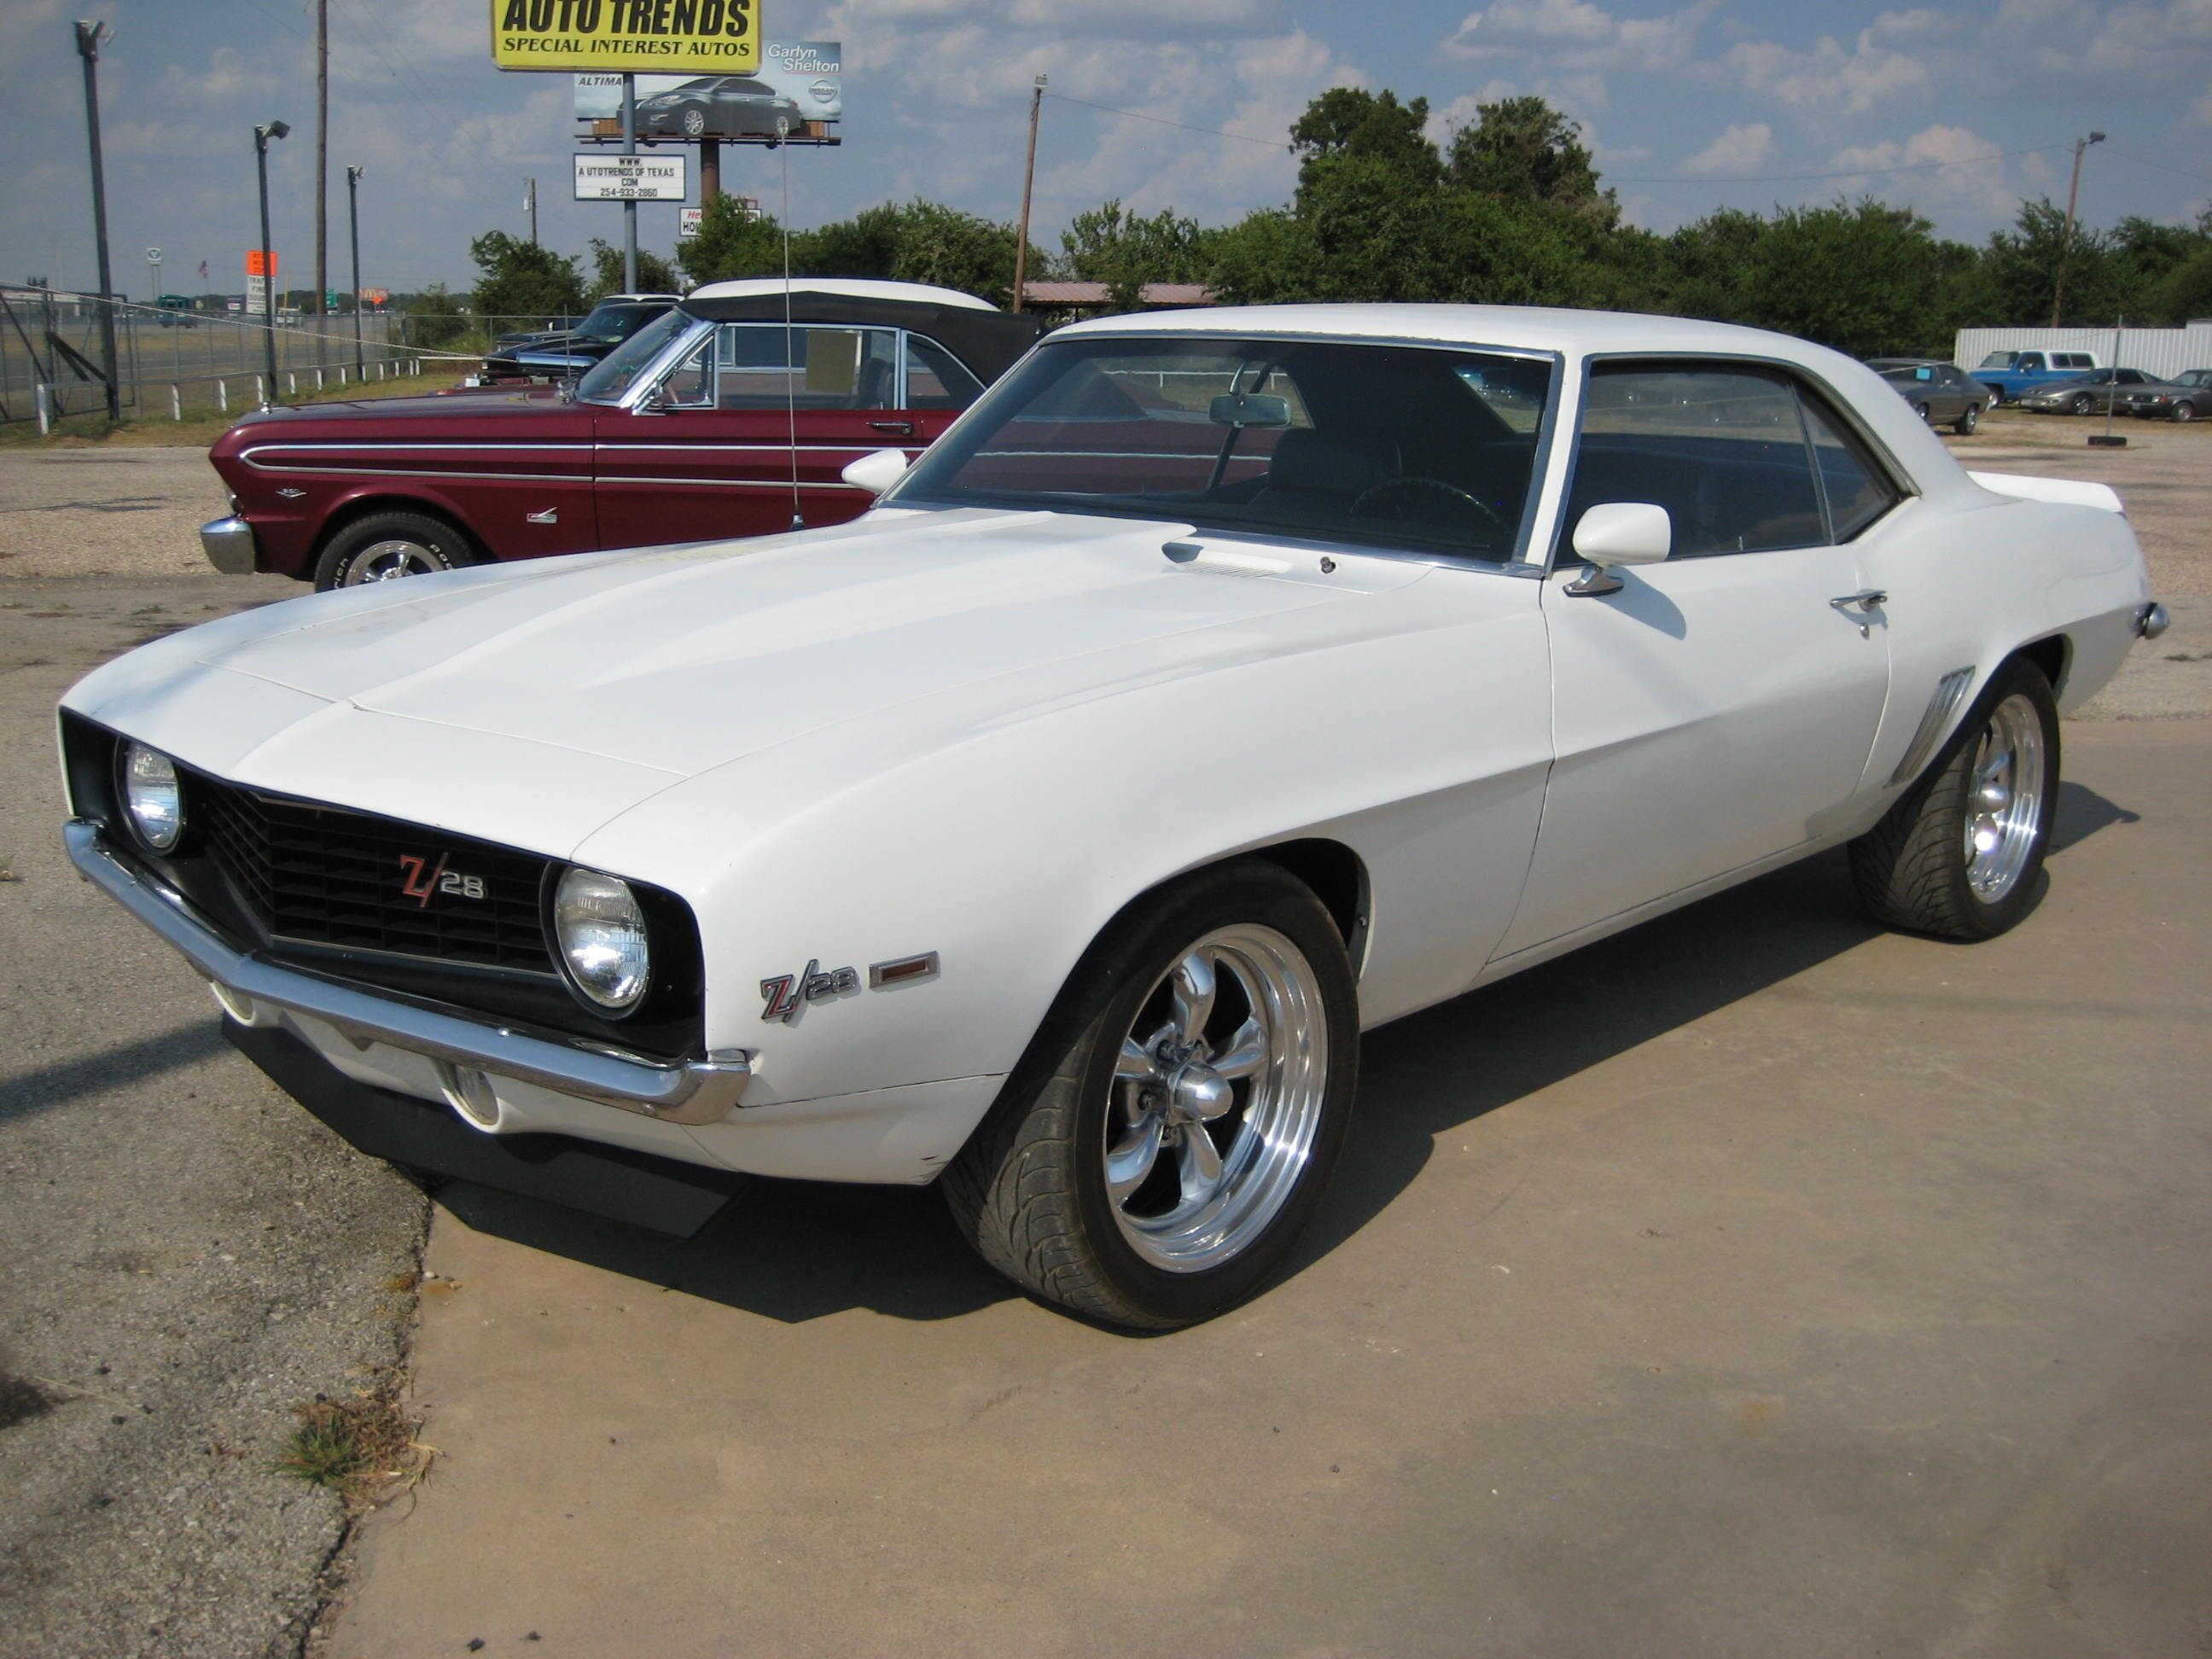 62 Pontiac Rally II Cast Wheels Full Set furthermore Pontiac Promo Errors additionally Watch as well 1970 Chevrolet Camaro For Sale likewise 1725. on muscle car 69 camaro